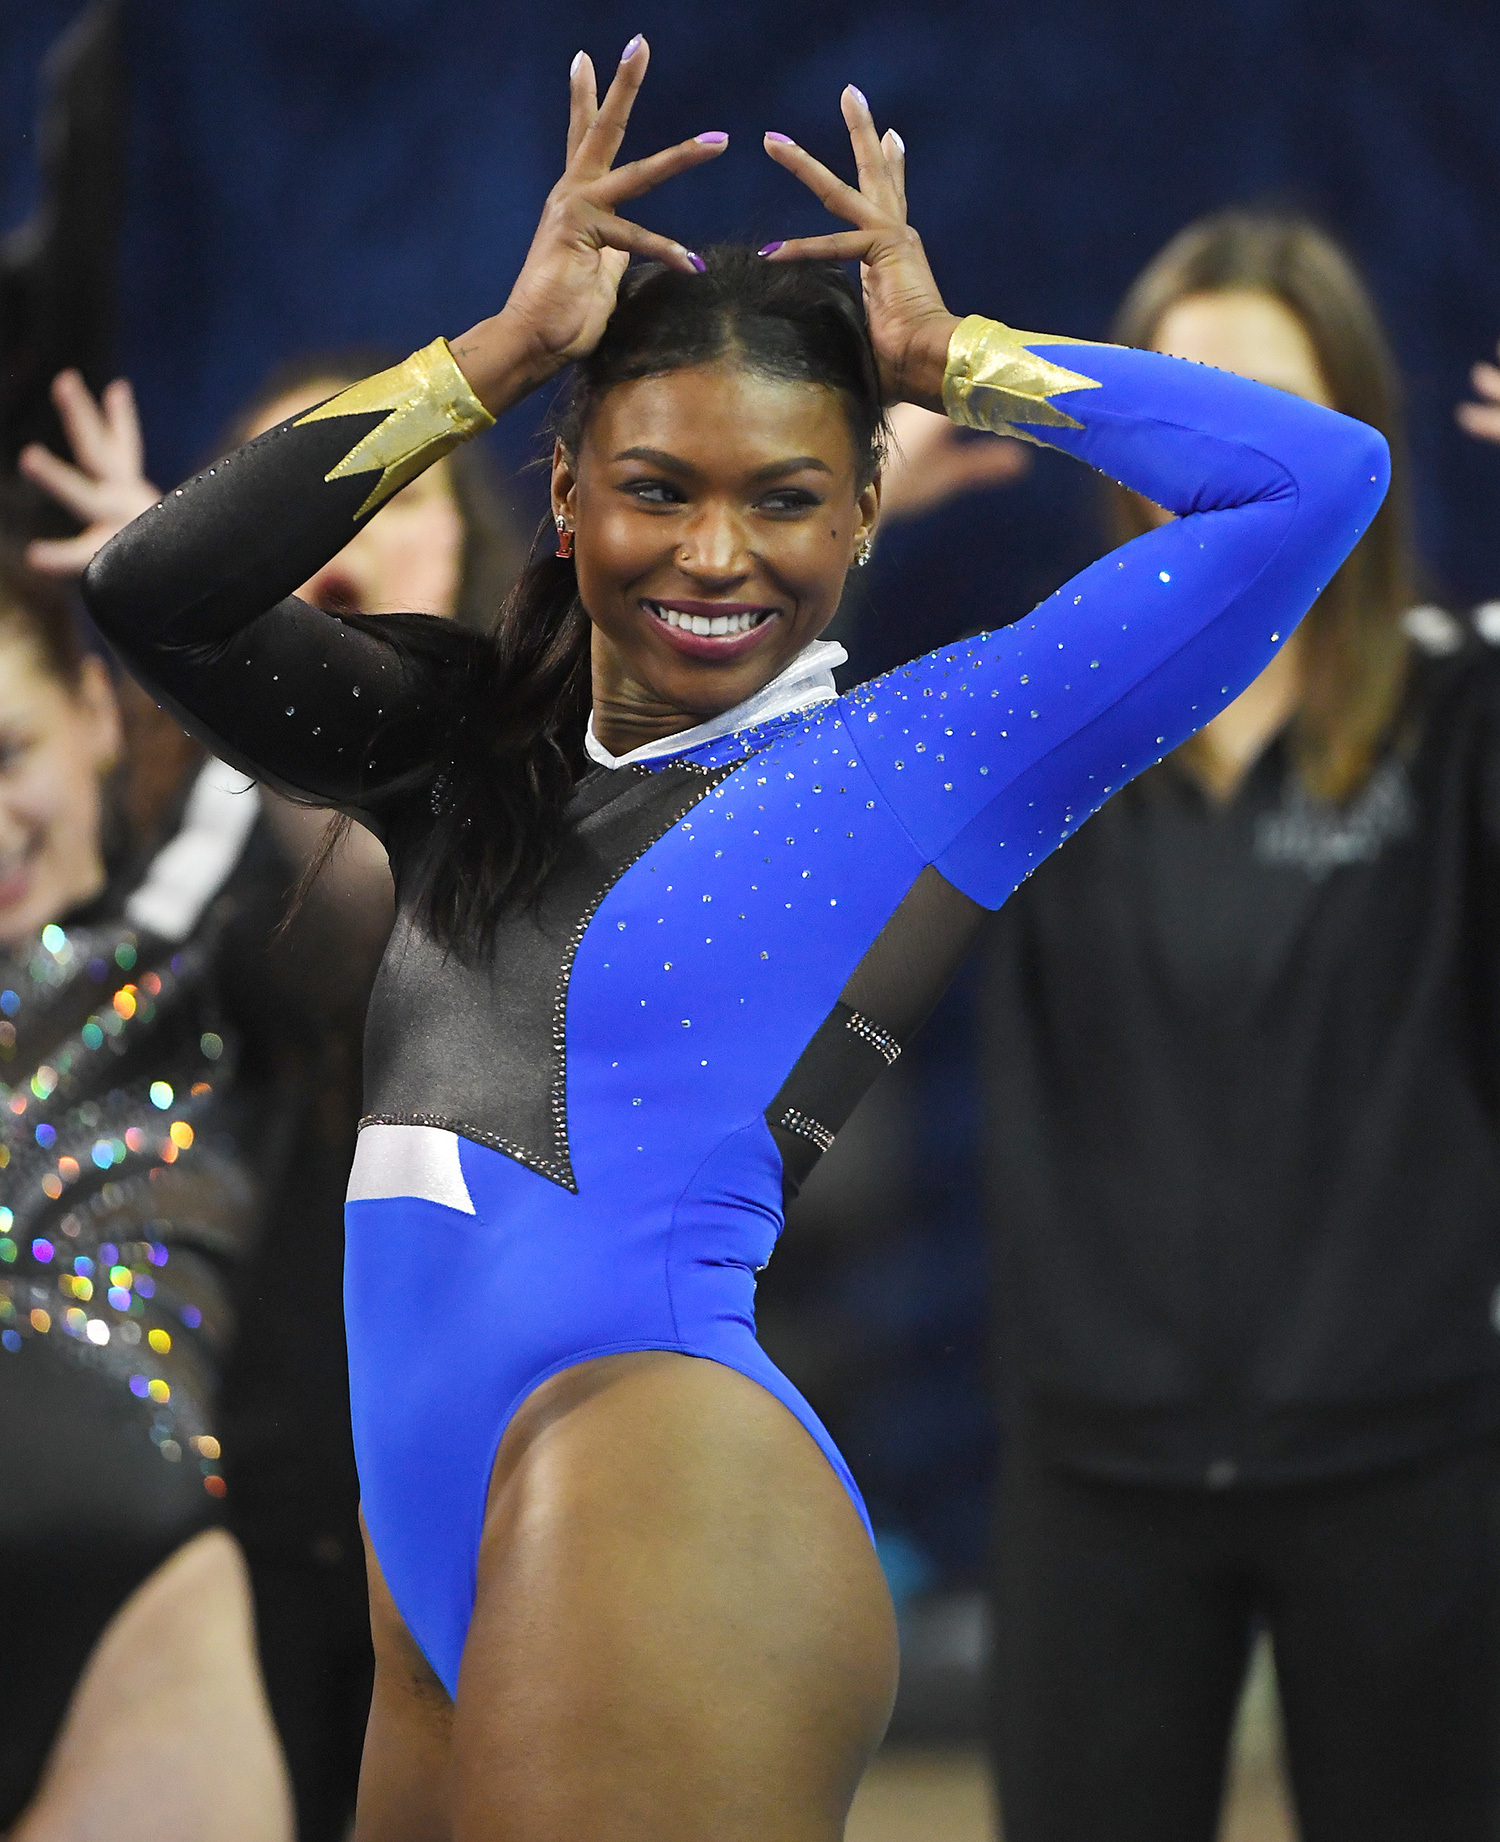 Nia Dennis performs the floor exercise during UCLA Gymnastics Meet the Bruins intra squad event at Pauley Pavilion on December 14, 2019 in Los Angeles, California